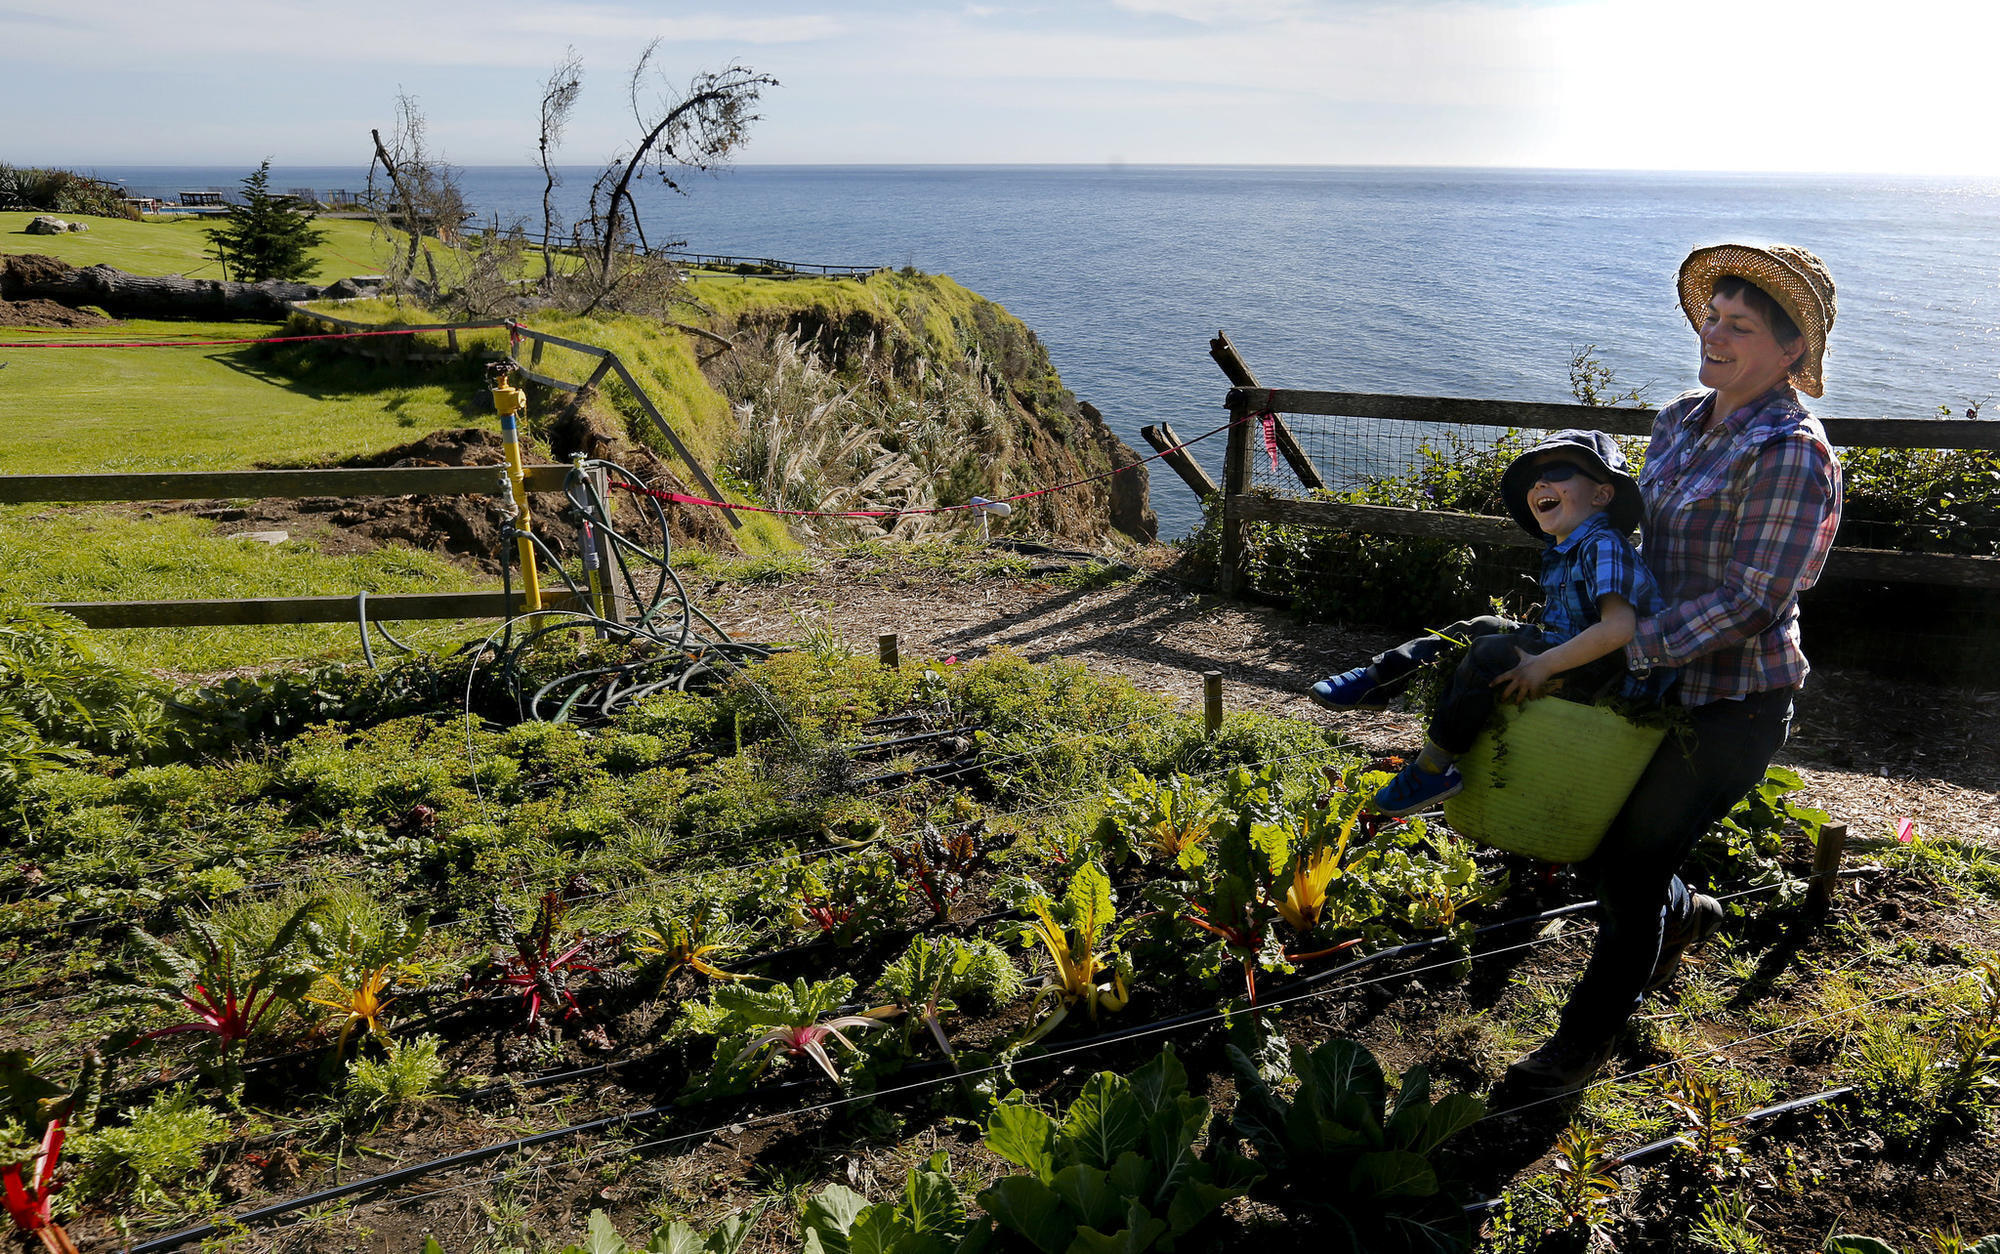 Big Sur lost a bridge and slipped back in time. Now residents are wondering what happens next